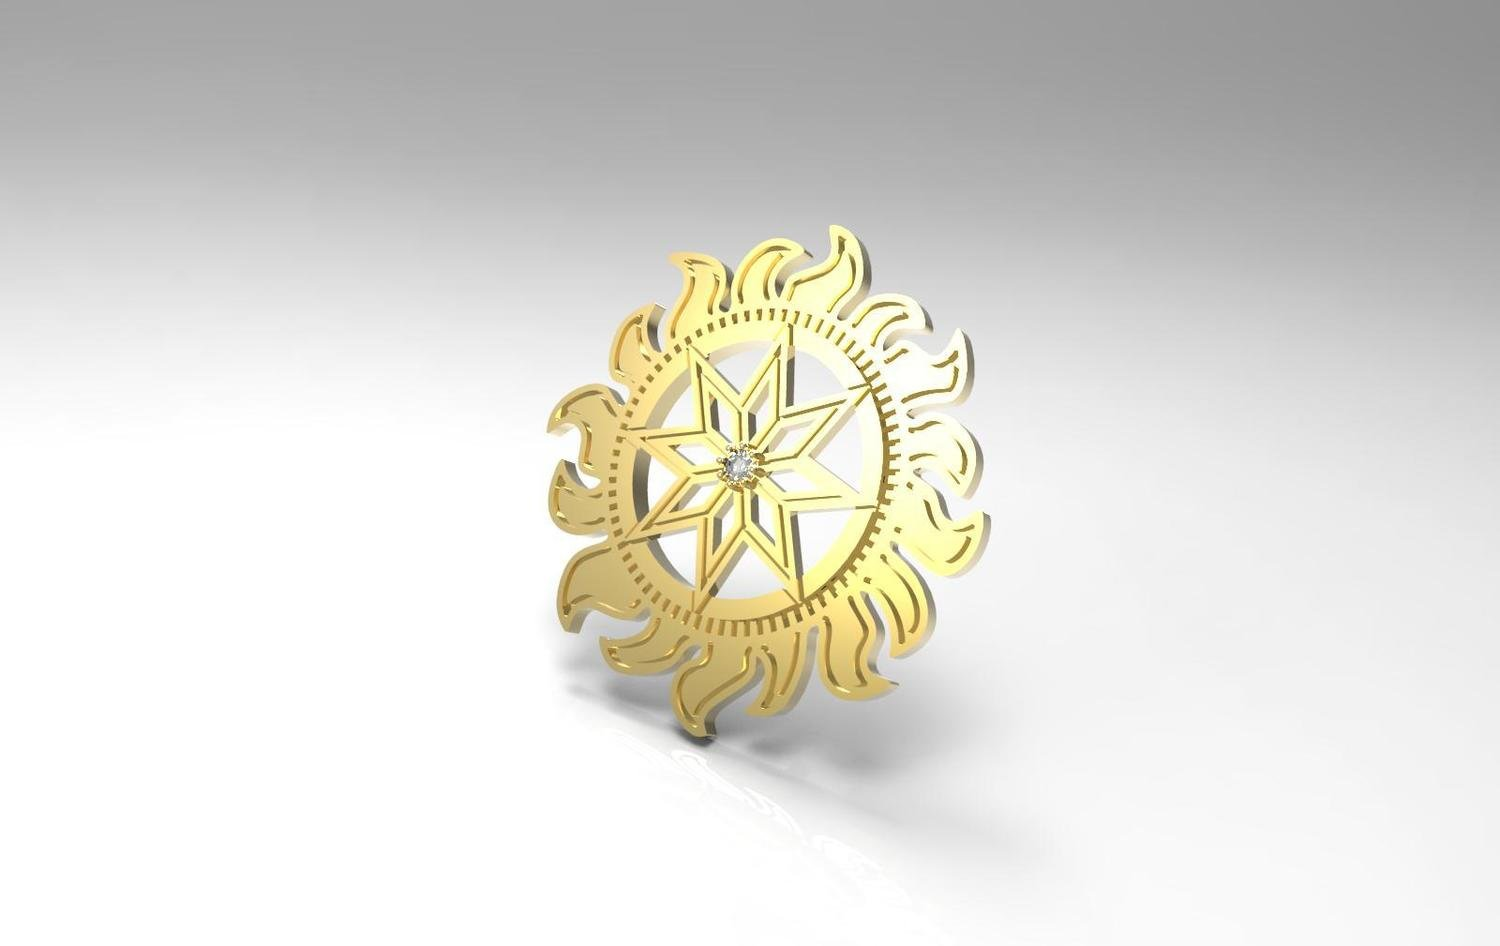 3D CAD Model of Pendant